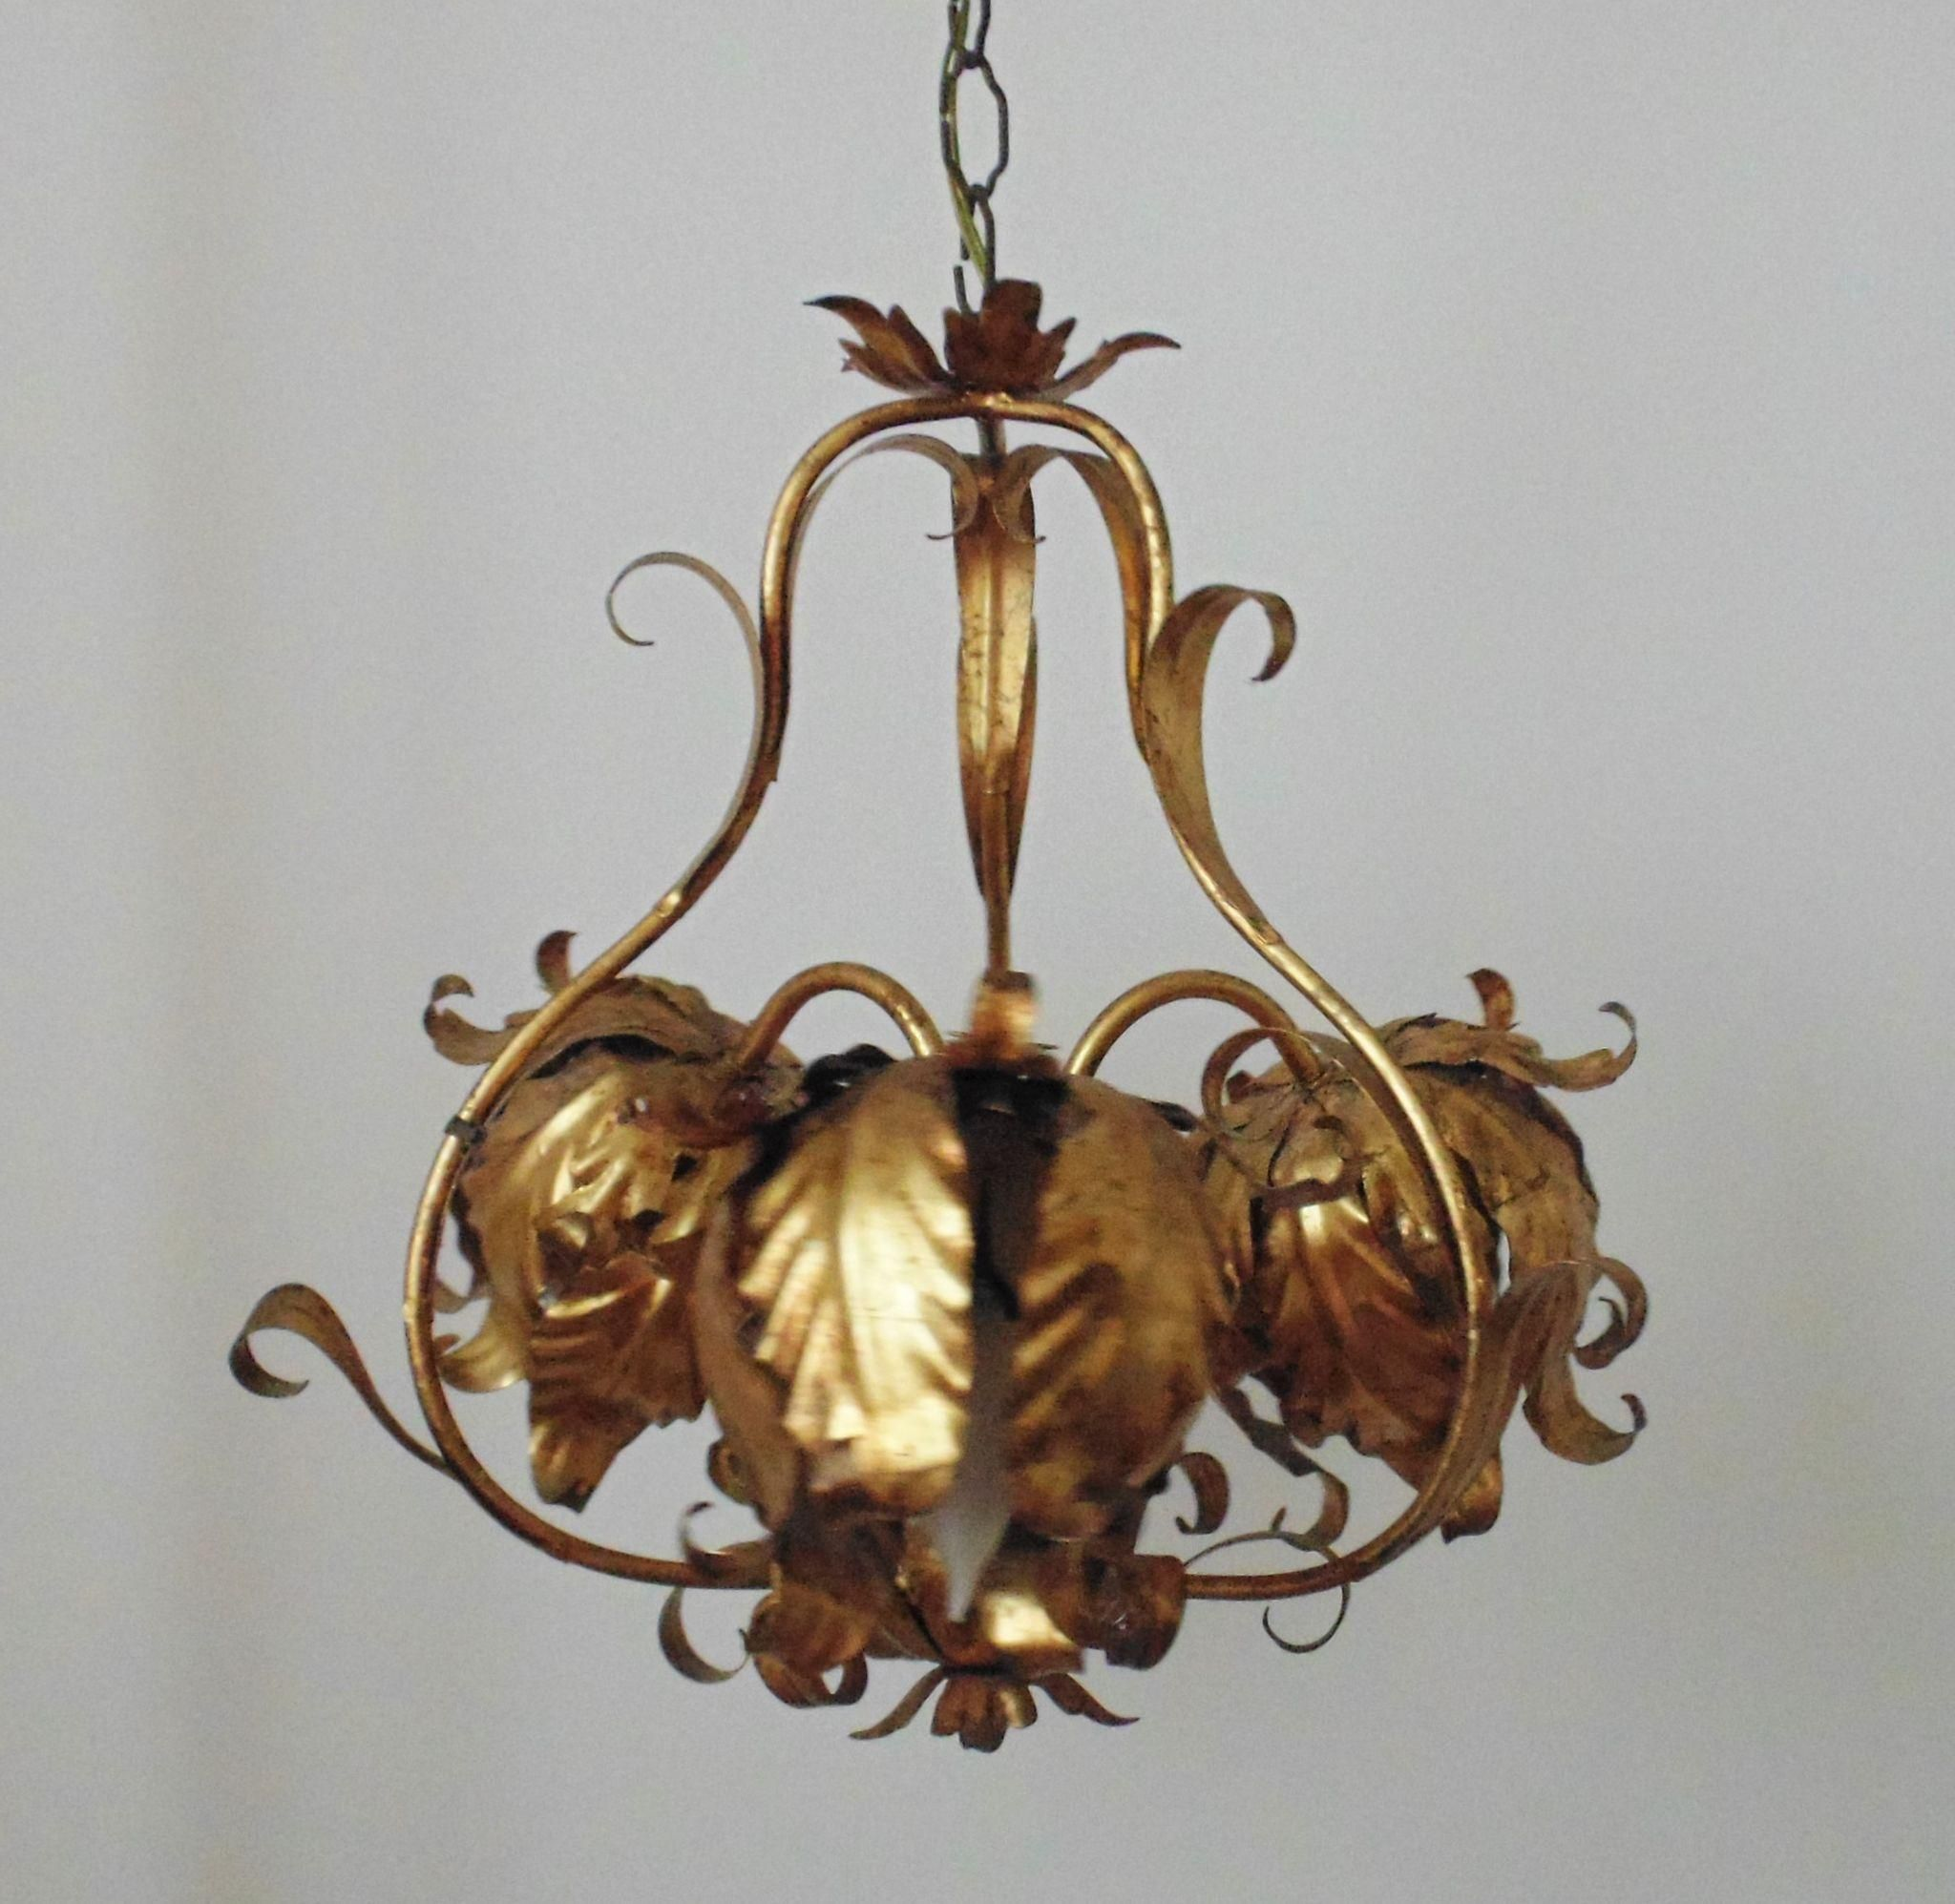 Modern italian tole chandelier gilt metal flowers floral birdcage modern italian tole chandelier gilt metal flowers floral birdcage mid century hollywood regency glam italy gold arubaitofo Image collections